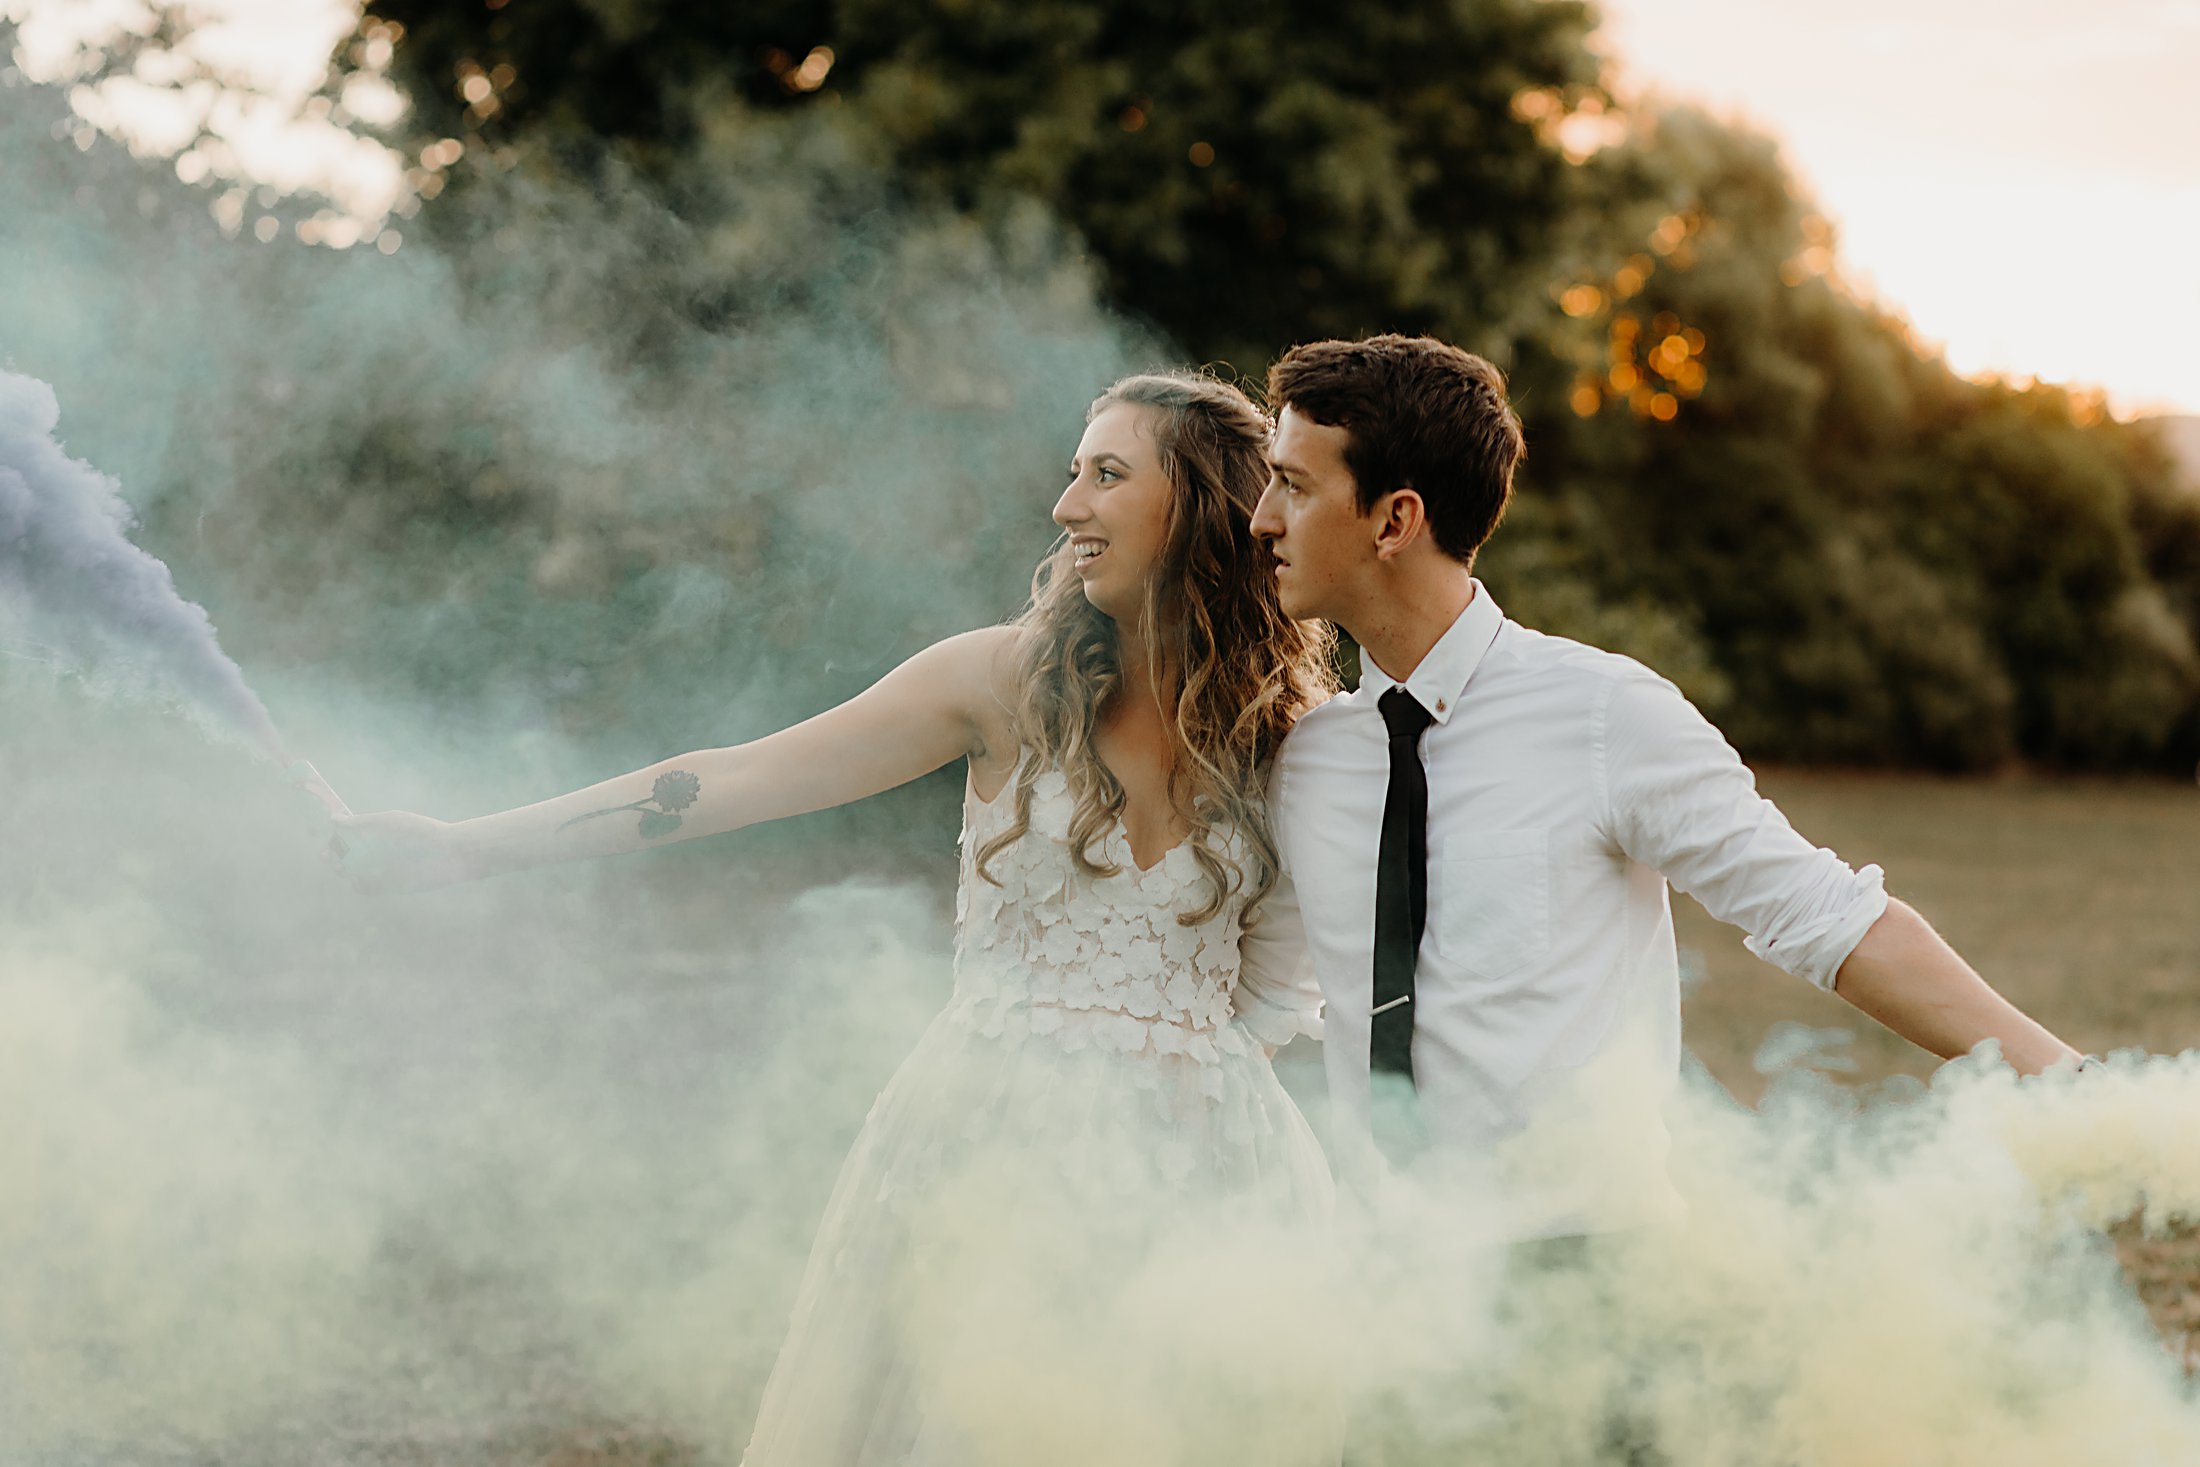 Smokebomb Wedding Photos